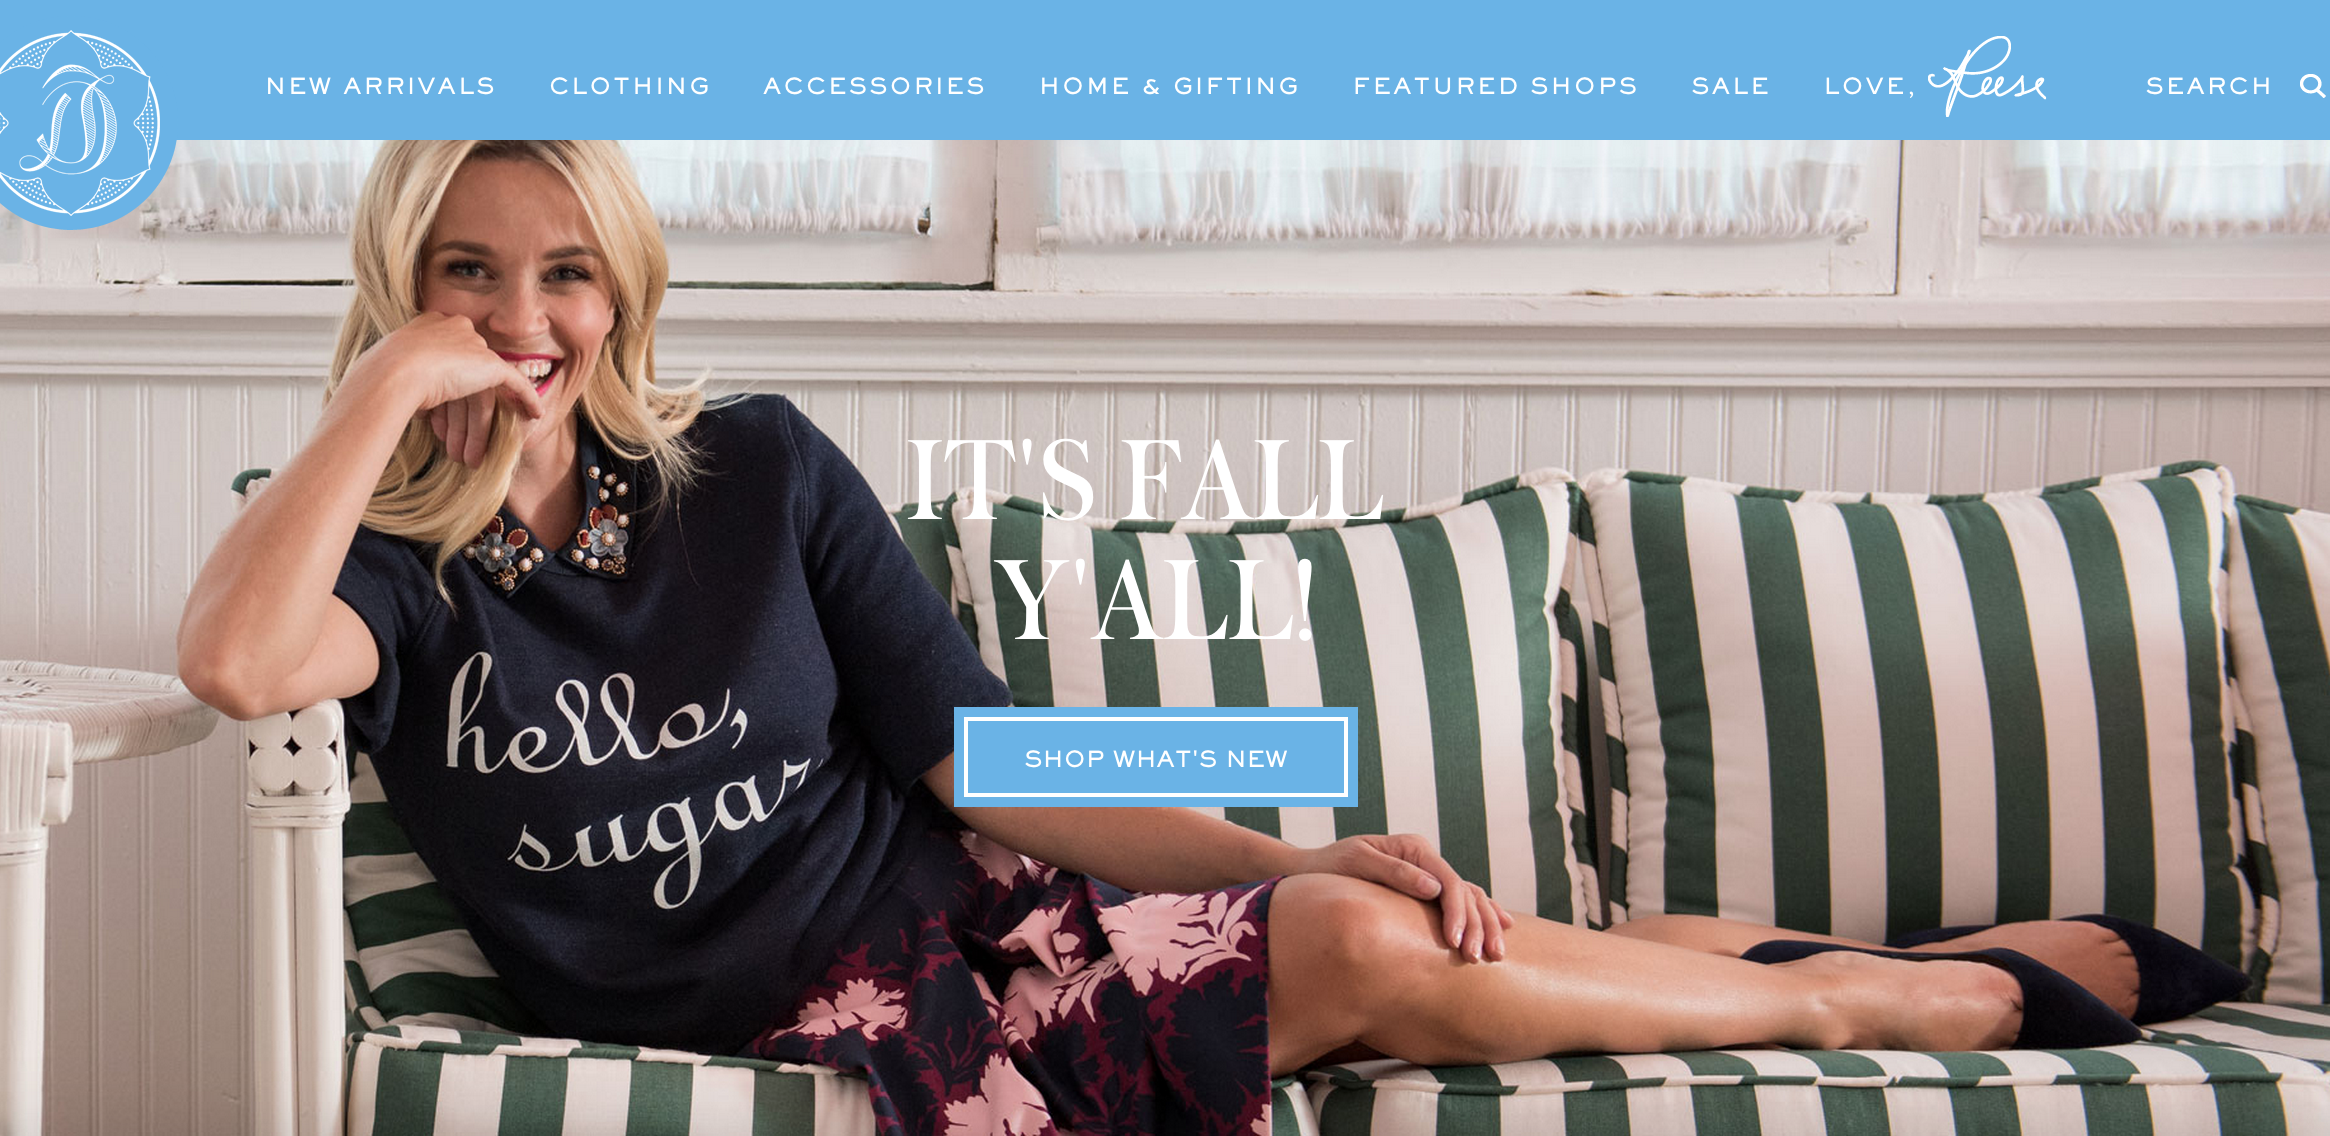 reese witherspoon draper james fall yall Why Do Some Celebrity Lifestyle Sites Fail While Others Thrive?